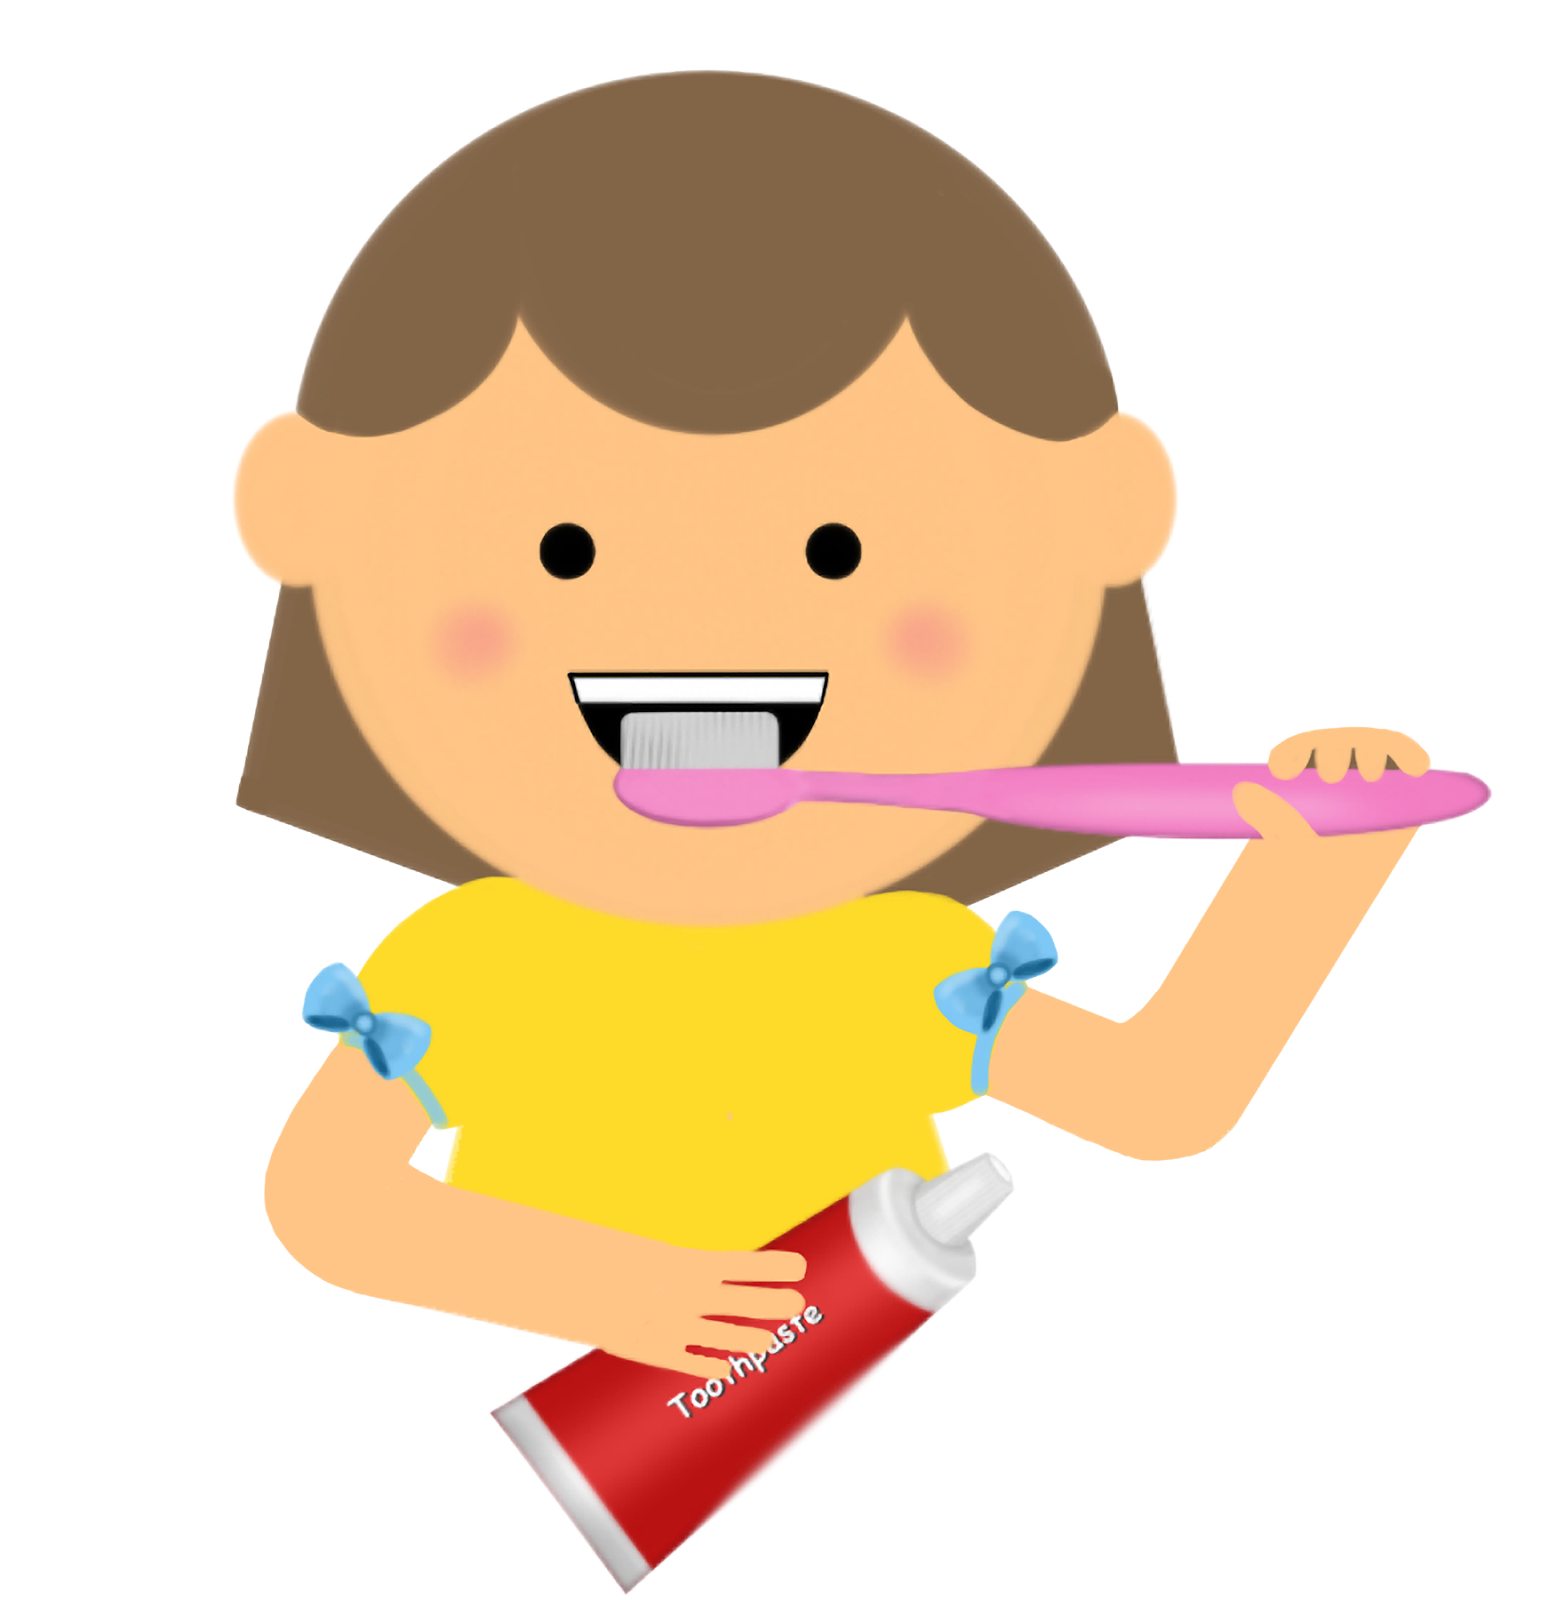 Brush teeth png. Collection of brushing